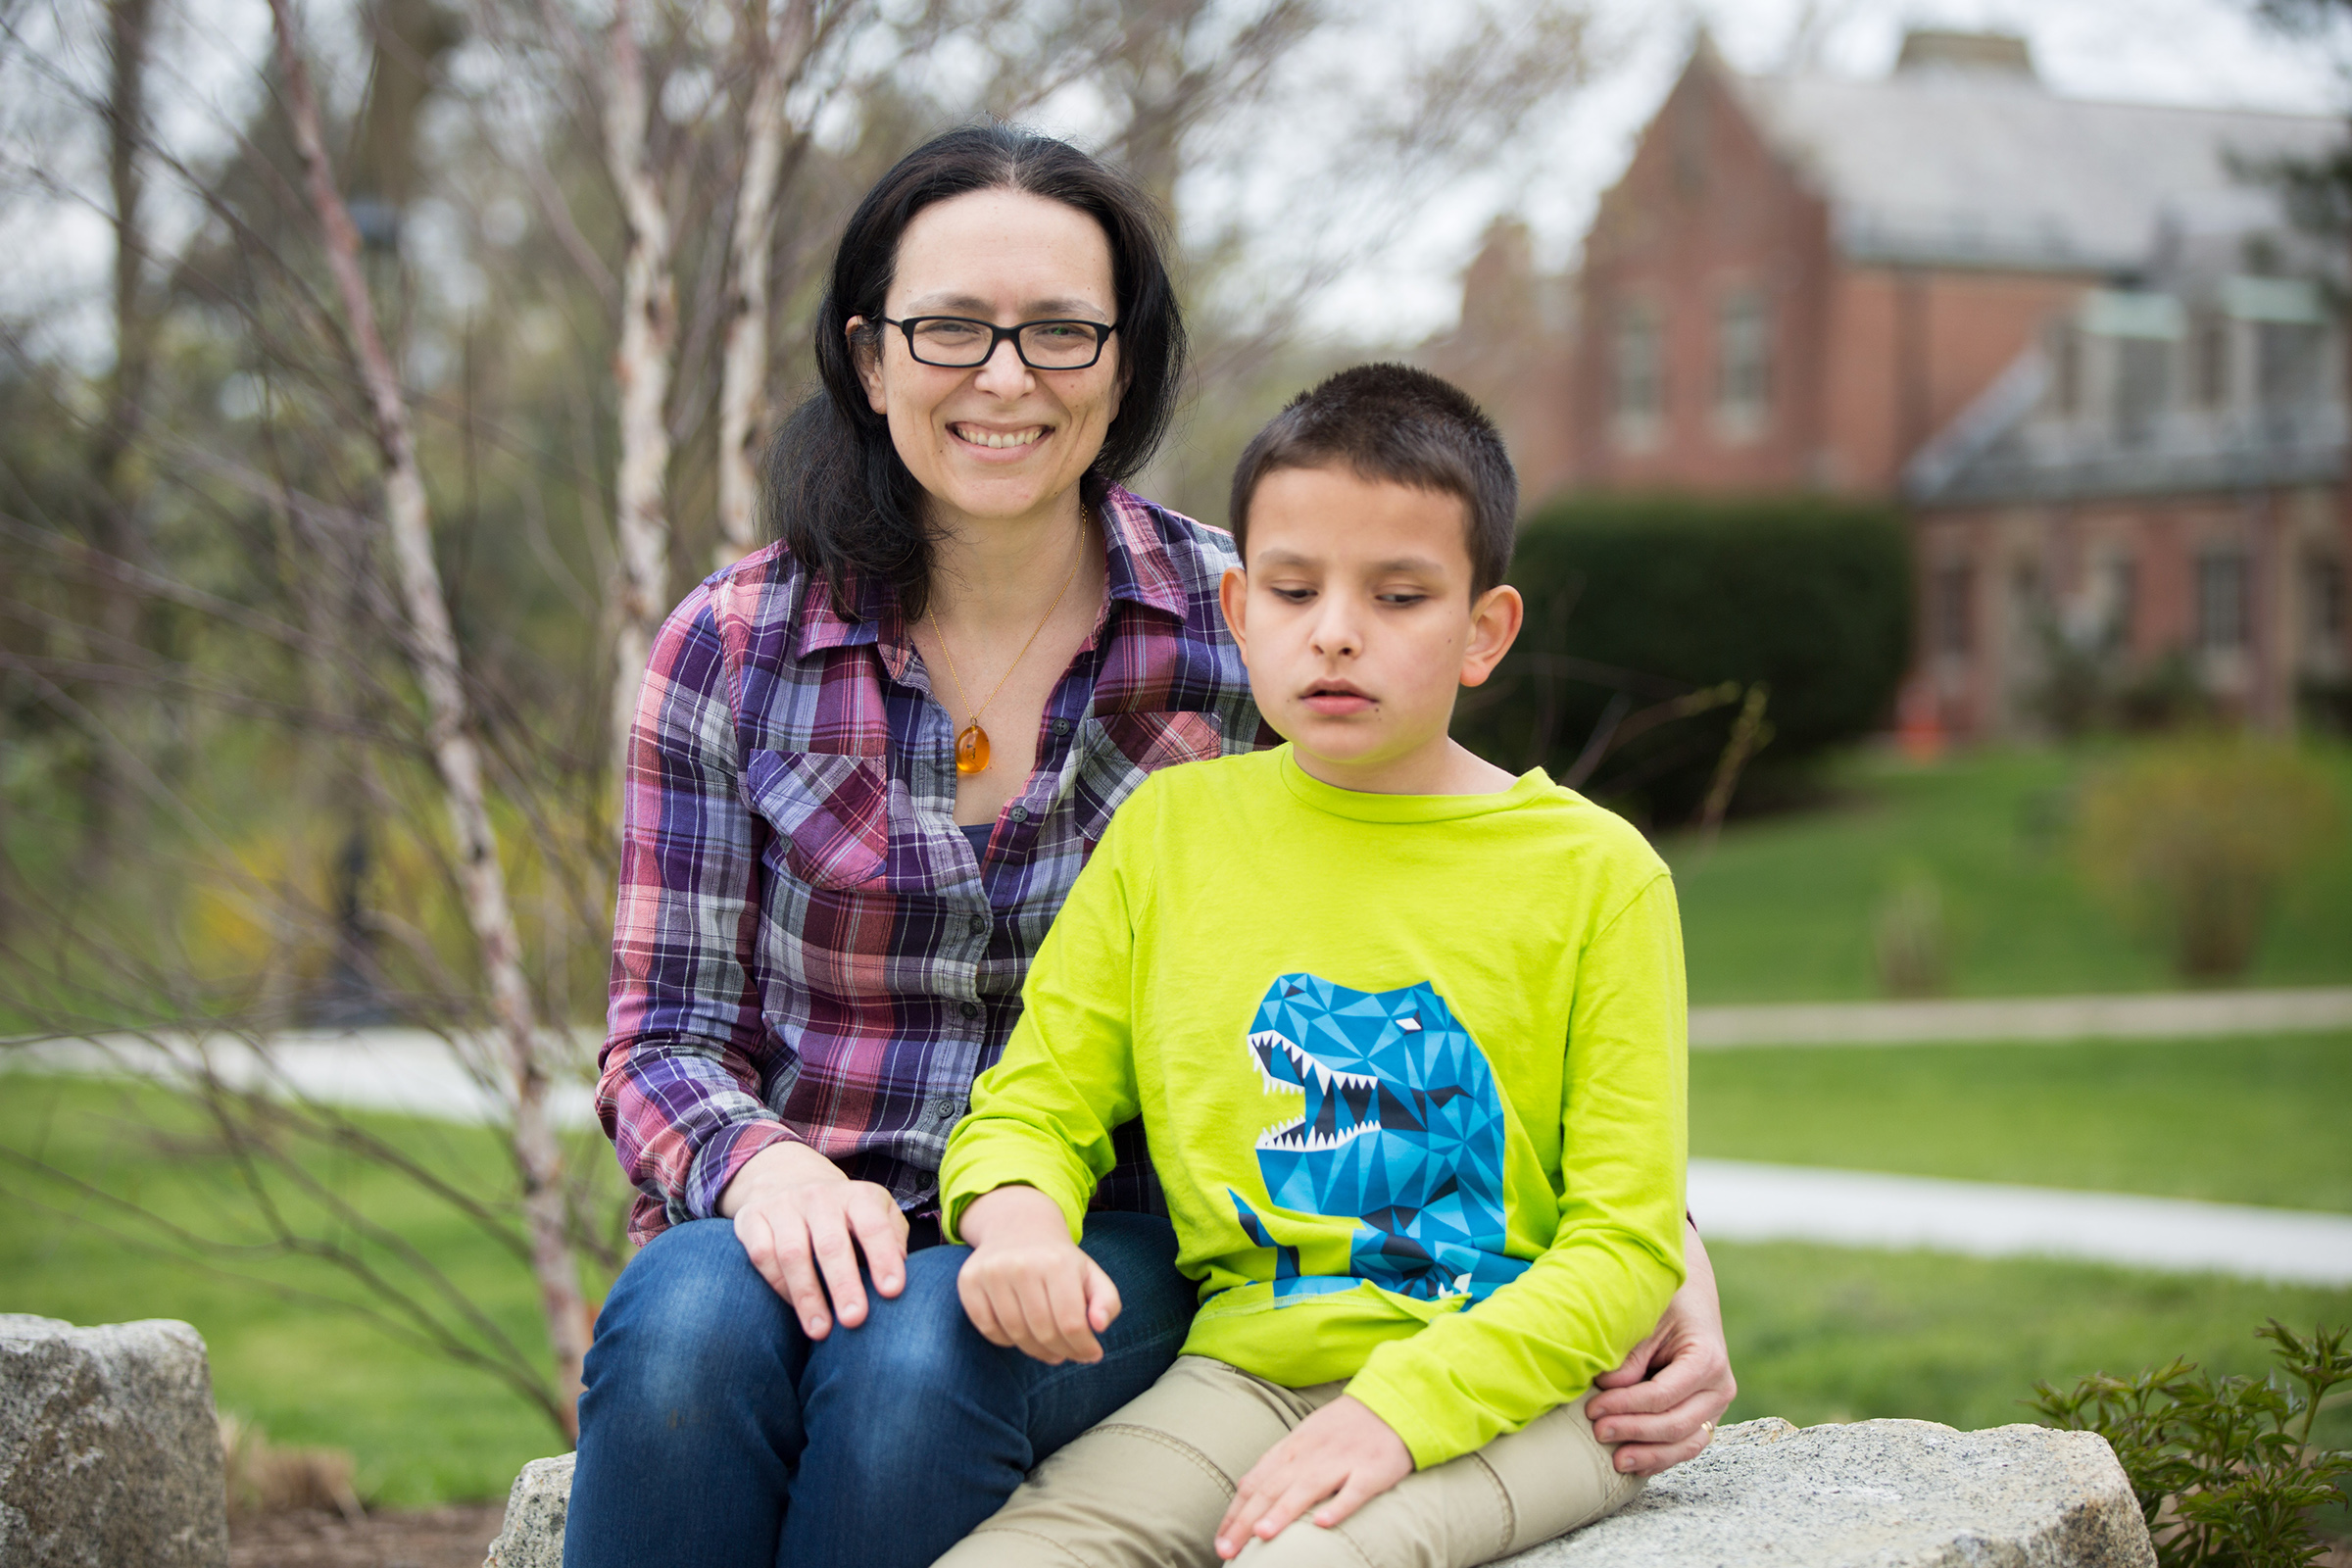 Amber and Ivan are seated on a large rock facing the camera. Amber is smiling, wearing a plaid shirt, jeans, glasses and an amber necklace. She has her arm around Ivan, who wears a green long-sleeve shirt with a blue t-rex and khakis. There are a few trees and buildings in the background.